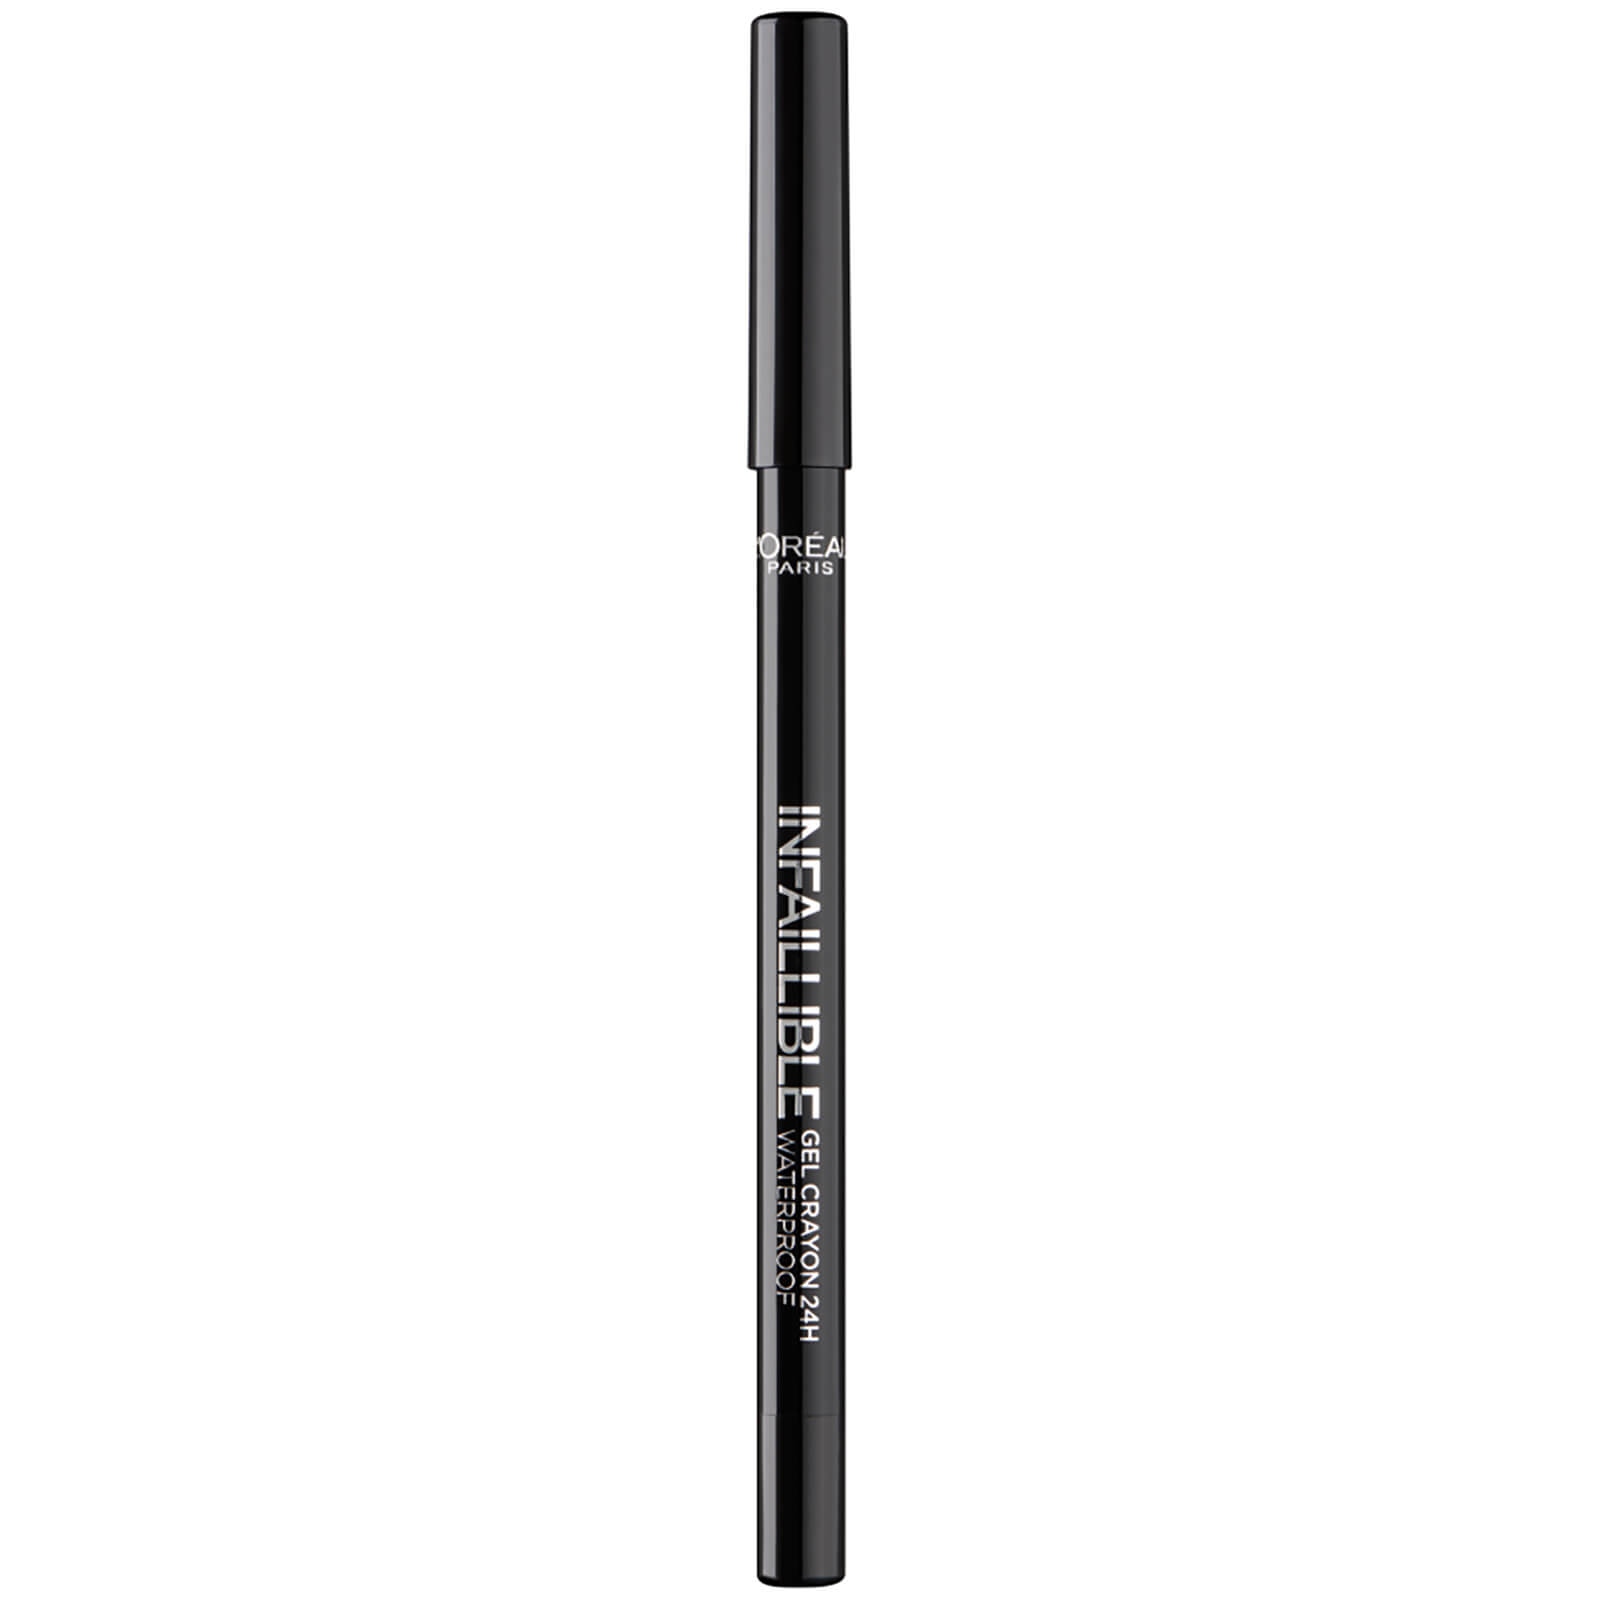 f73bd25baed L'Oréal Paris Infallible Crayon Eyeliner - 01 Back to Black | Free Shipping  | Lookfantastic